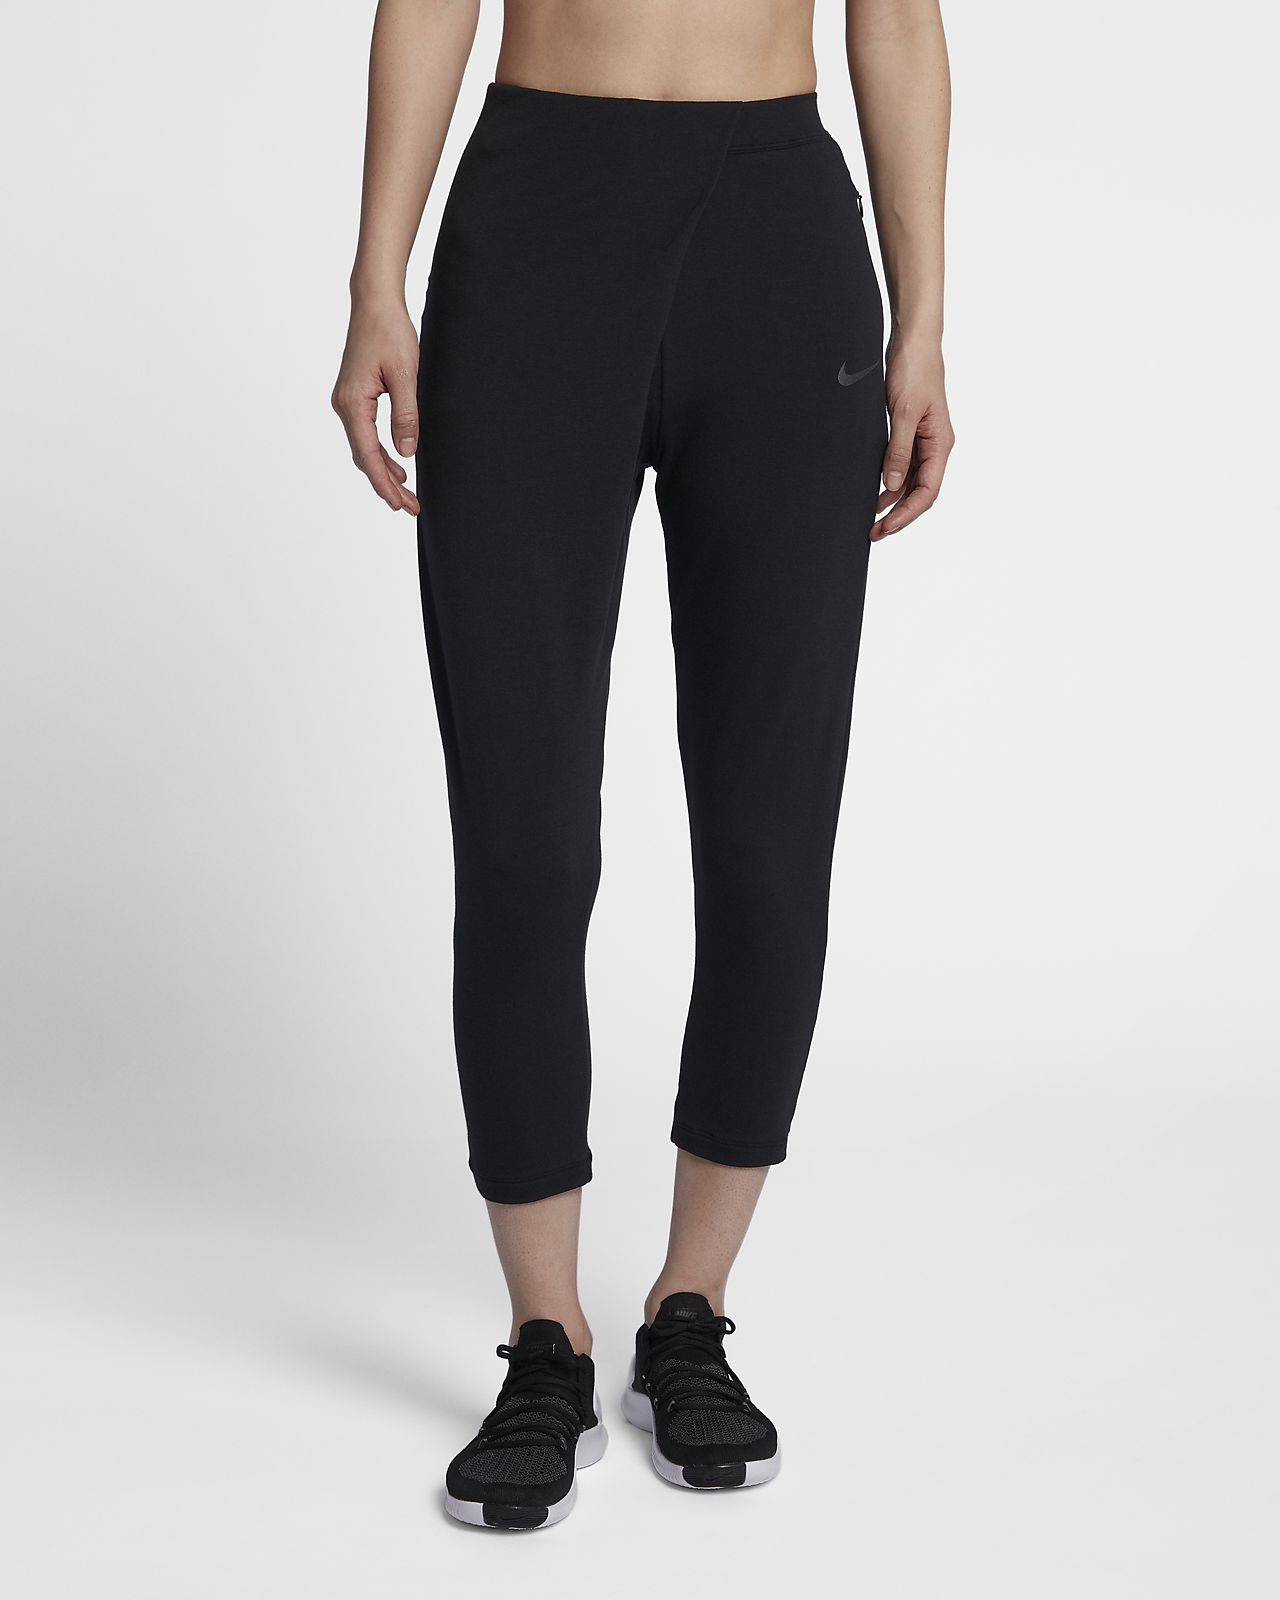 2afe621779 Nike Dri-FIT Studio Women s Mid-Rise Training Trousers. Nike.com GB